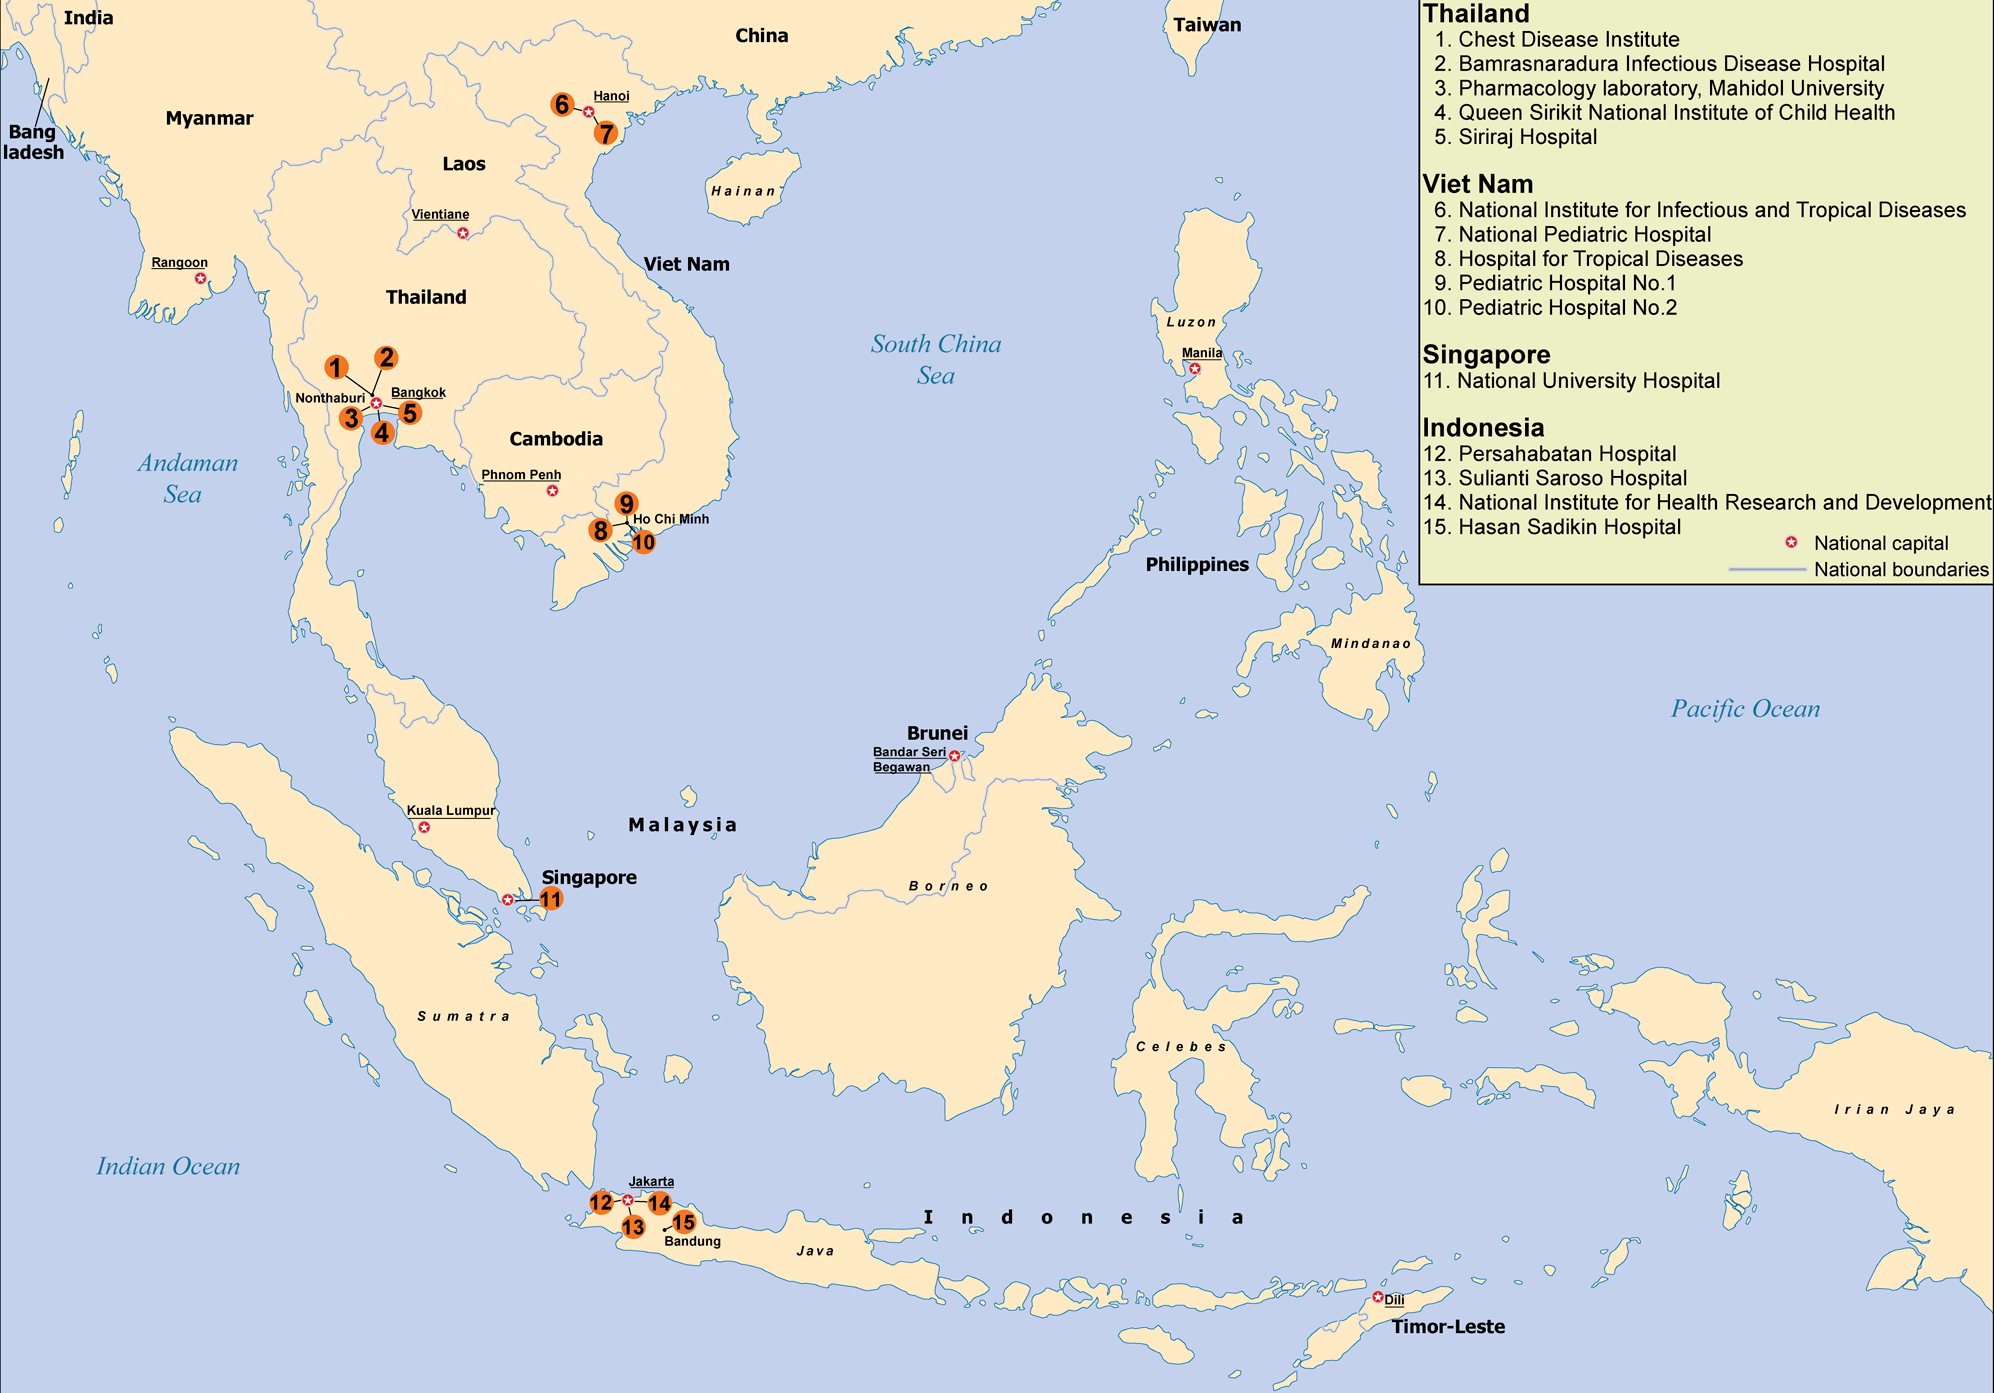 South East Asia Infectious Disease Clinical Research Network sites and laboratories.